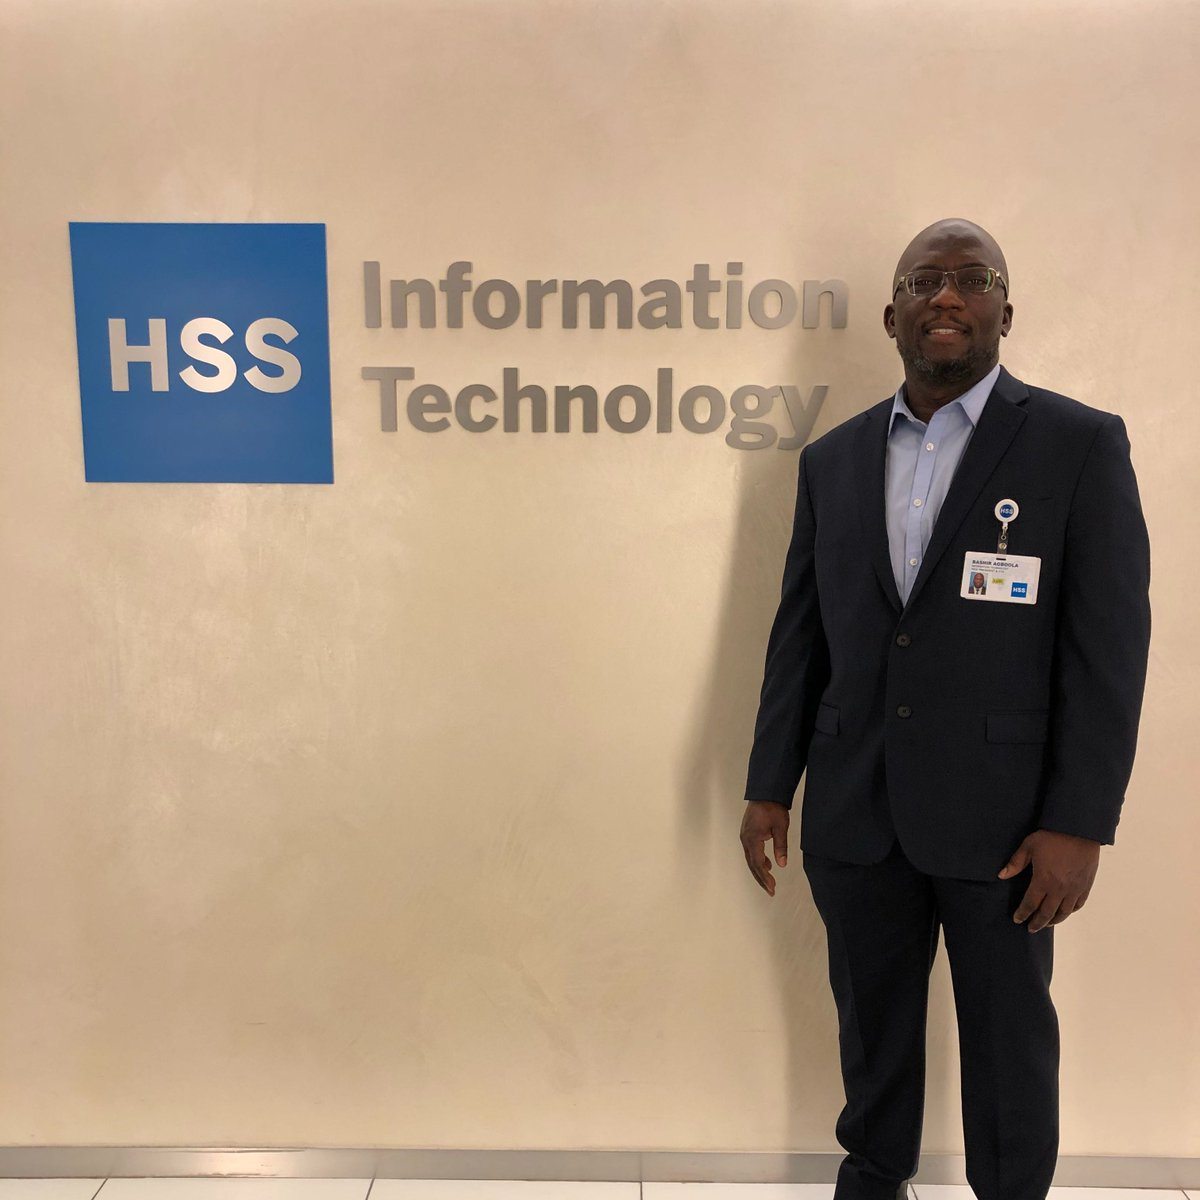 """Bashir Agboola, Vice President/Chief Technology Officer at HSS:  """"#BlackHistoryMonth represents for me a time of remembrance, celebration, appreciation, as well as a call to action."""" https://t.co/YMUqOMz5ct"""